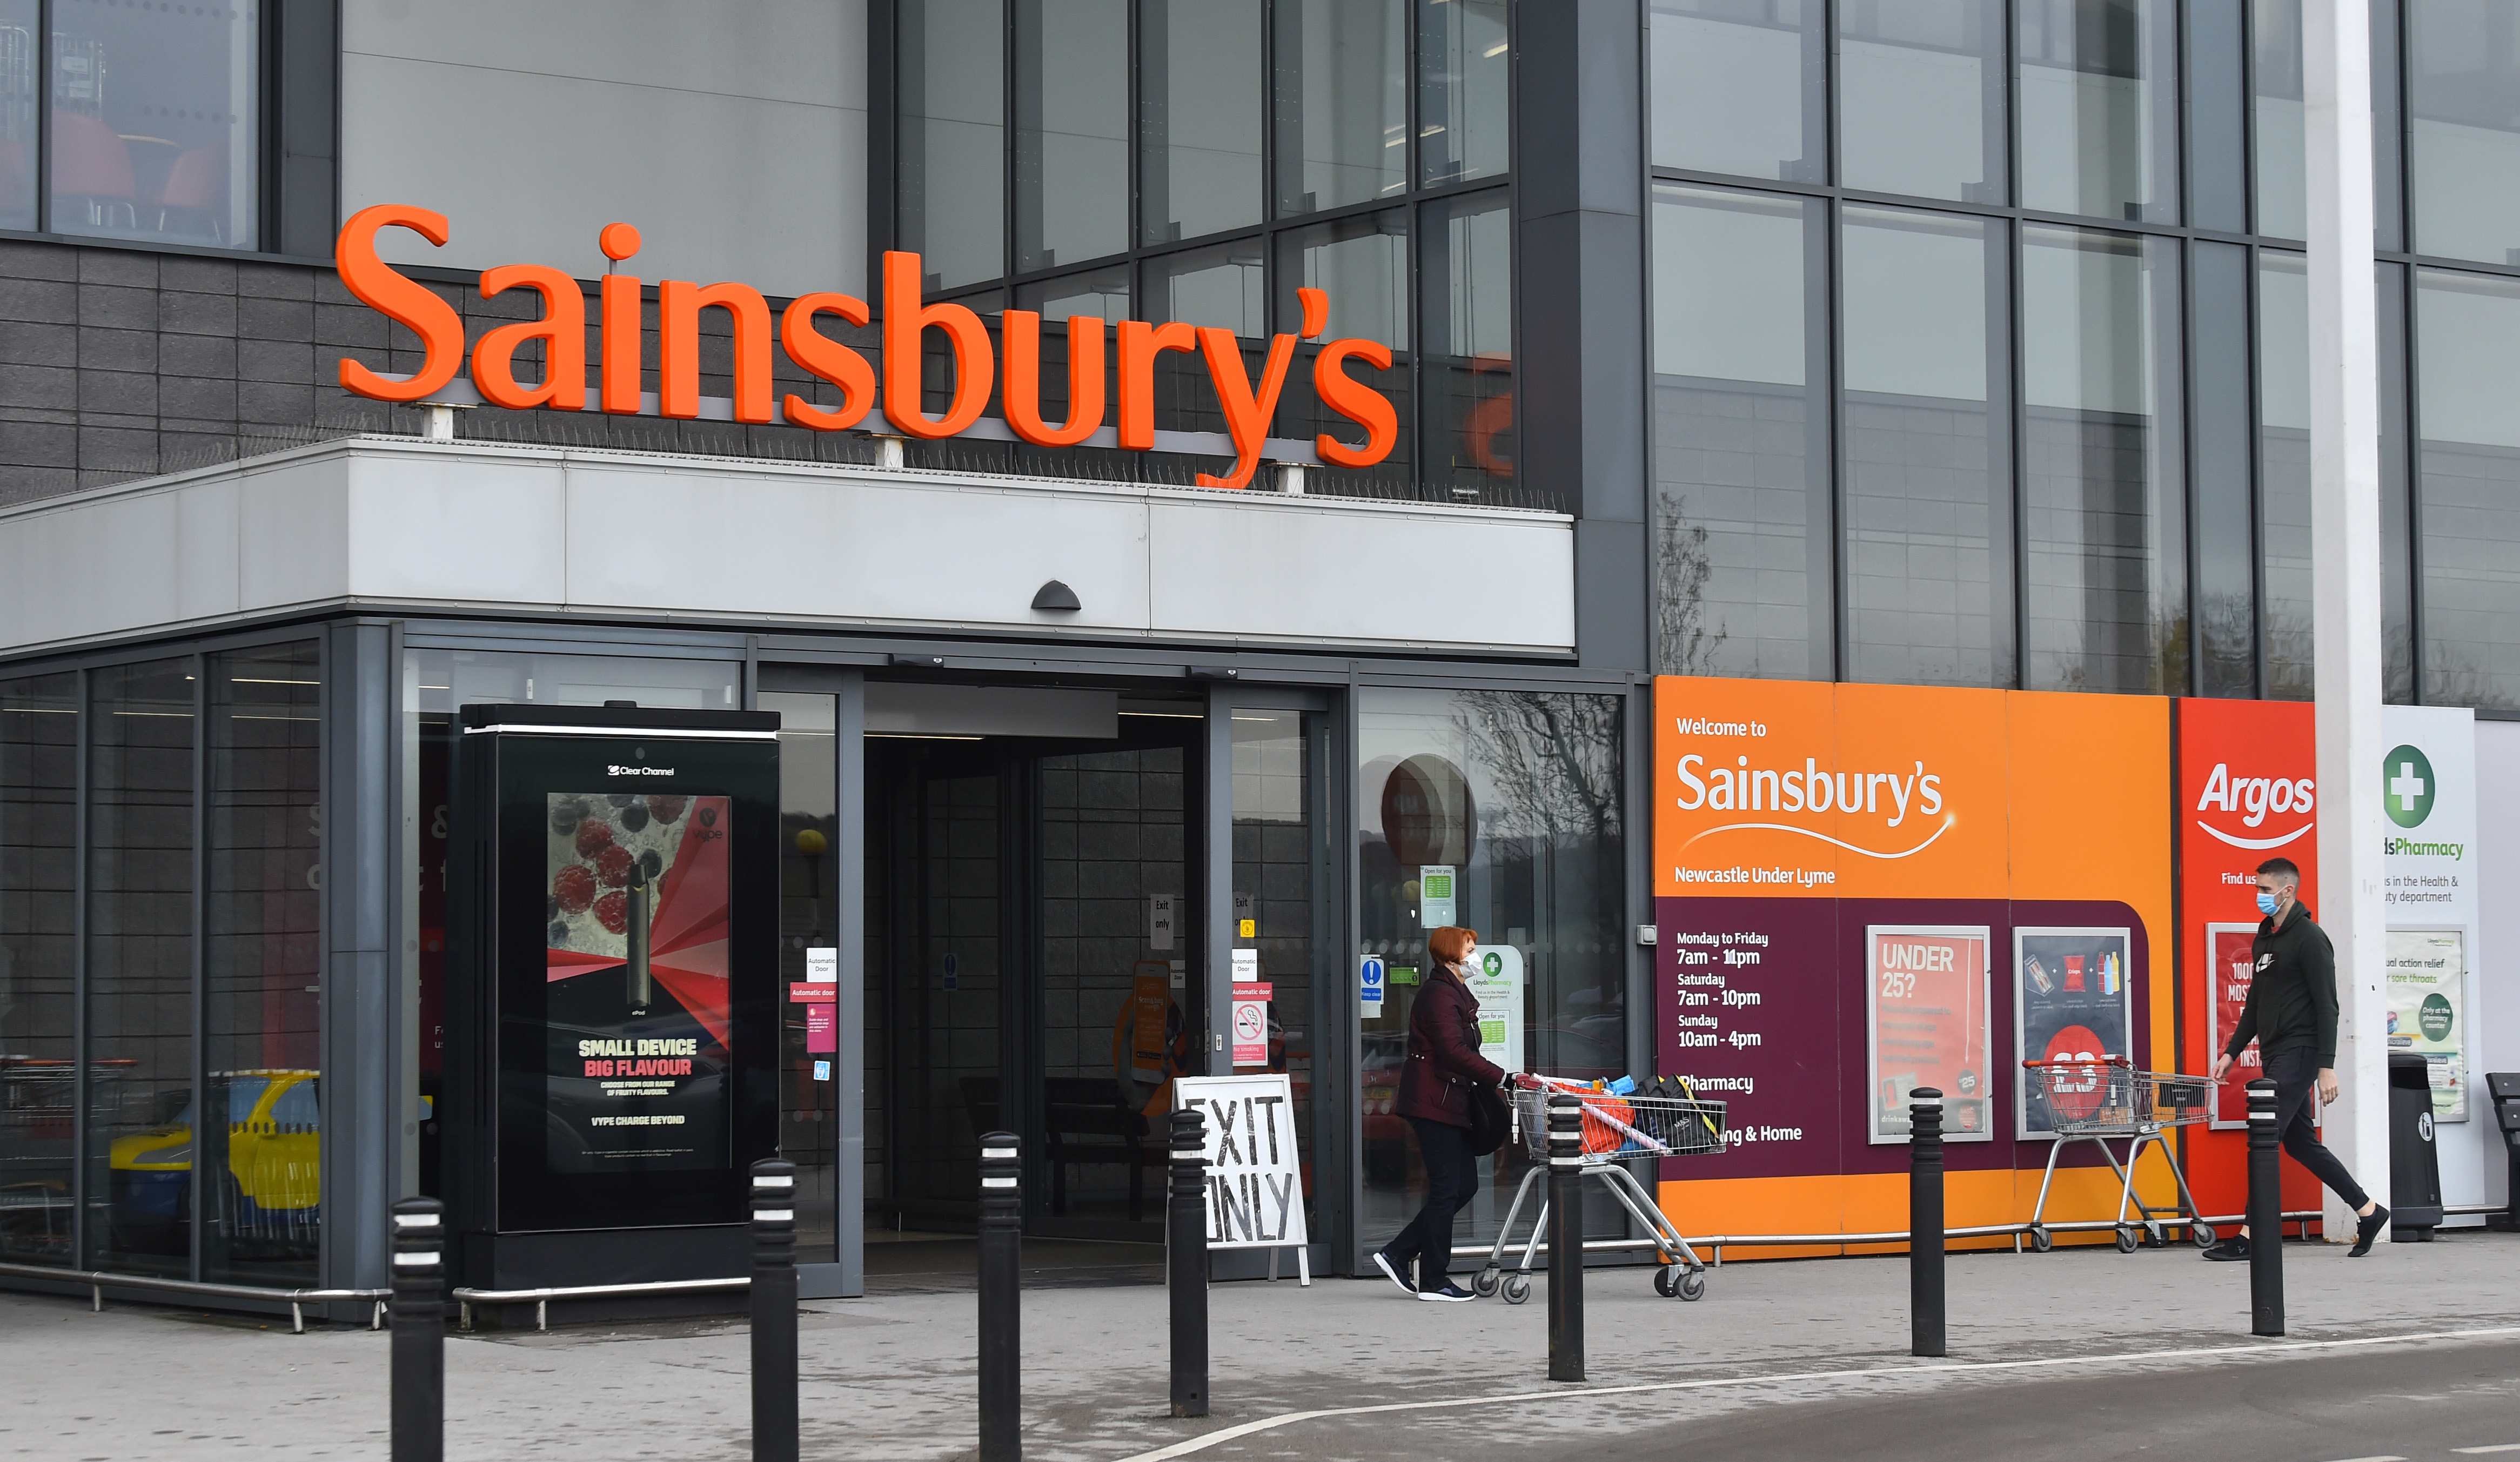 Sainsbury's also extended its Christmas opening hours this year